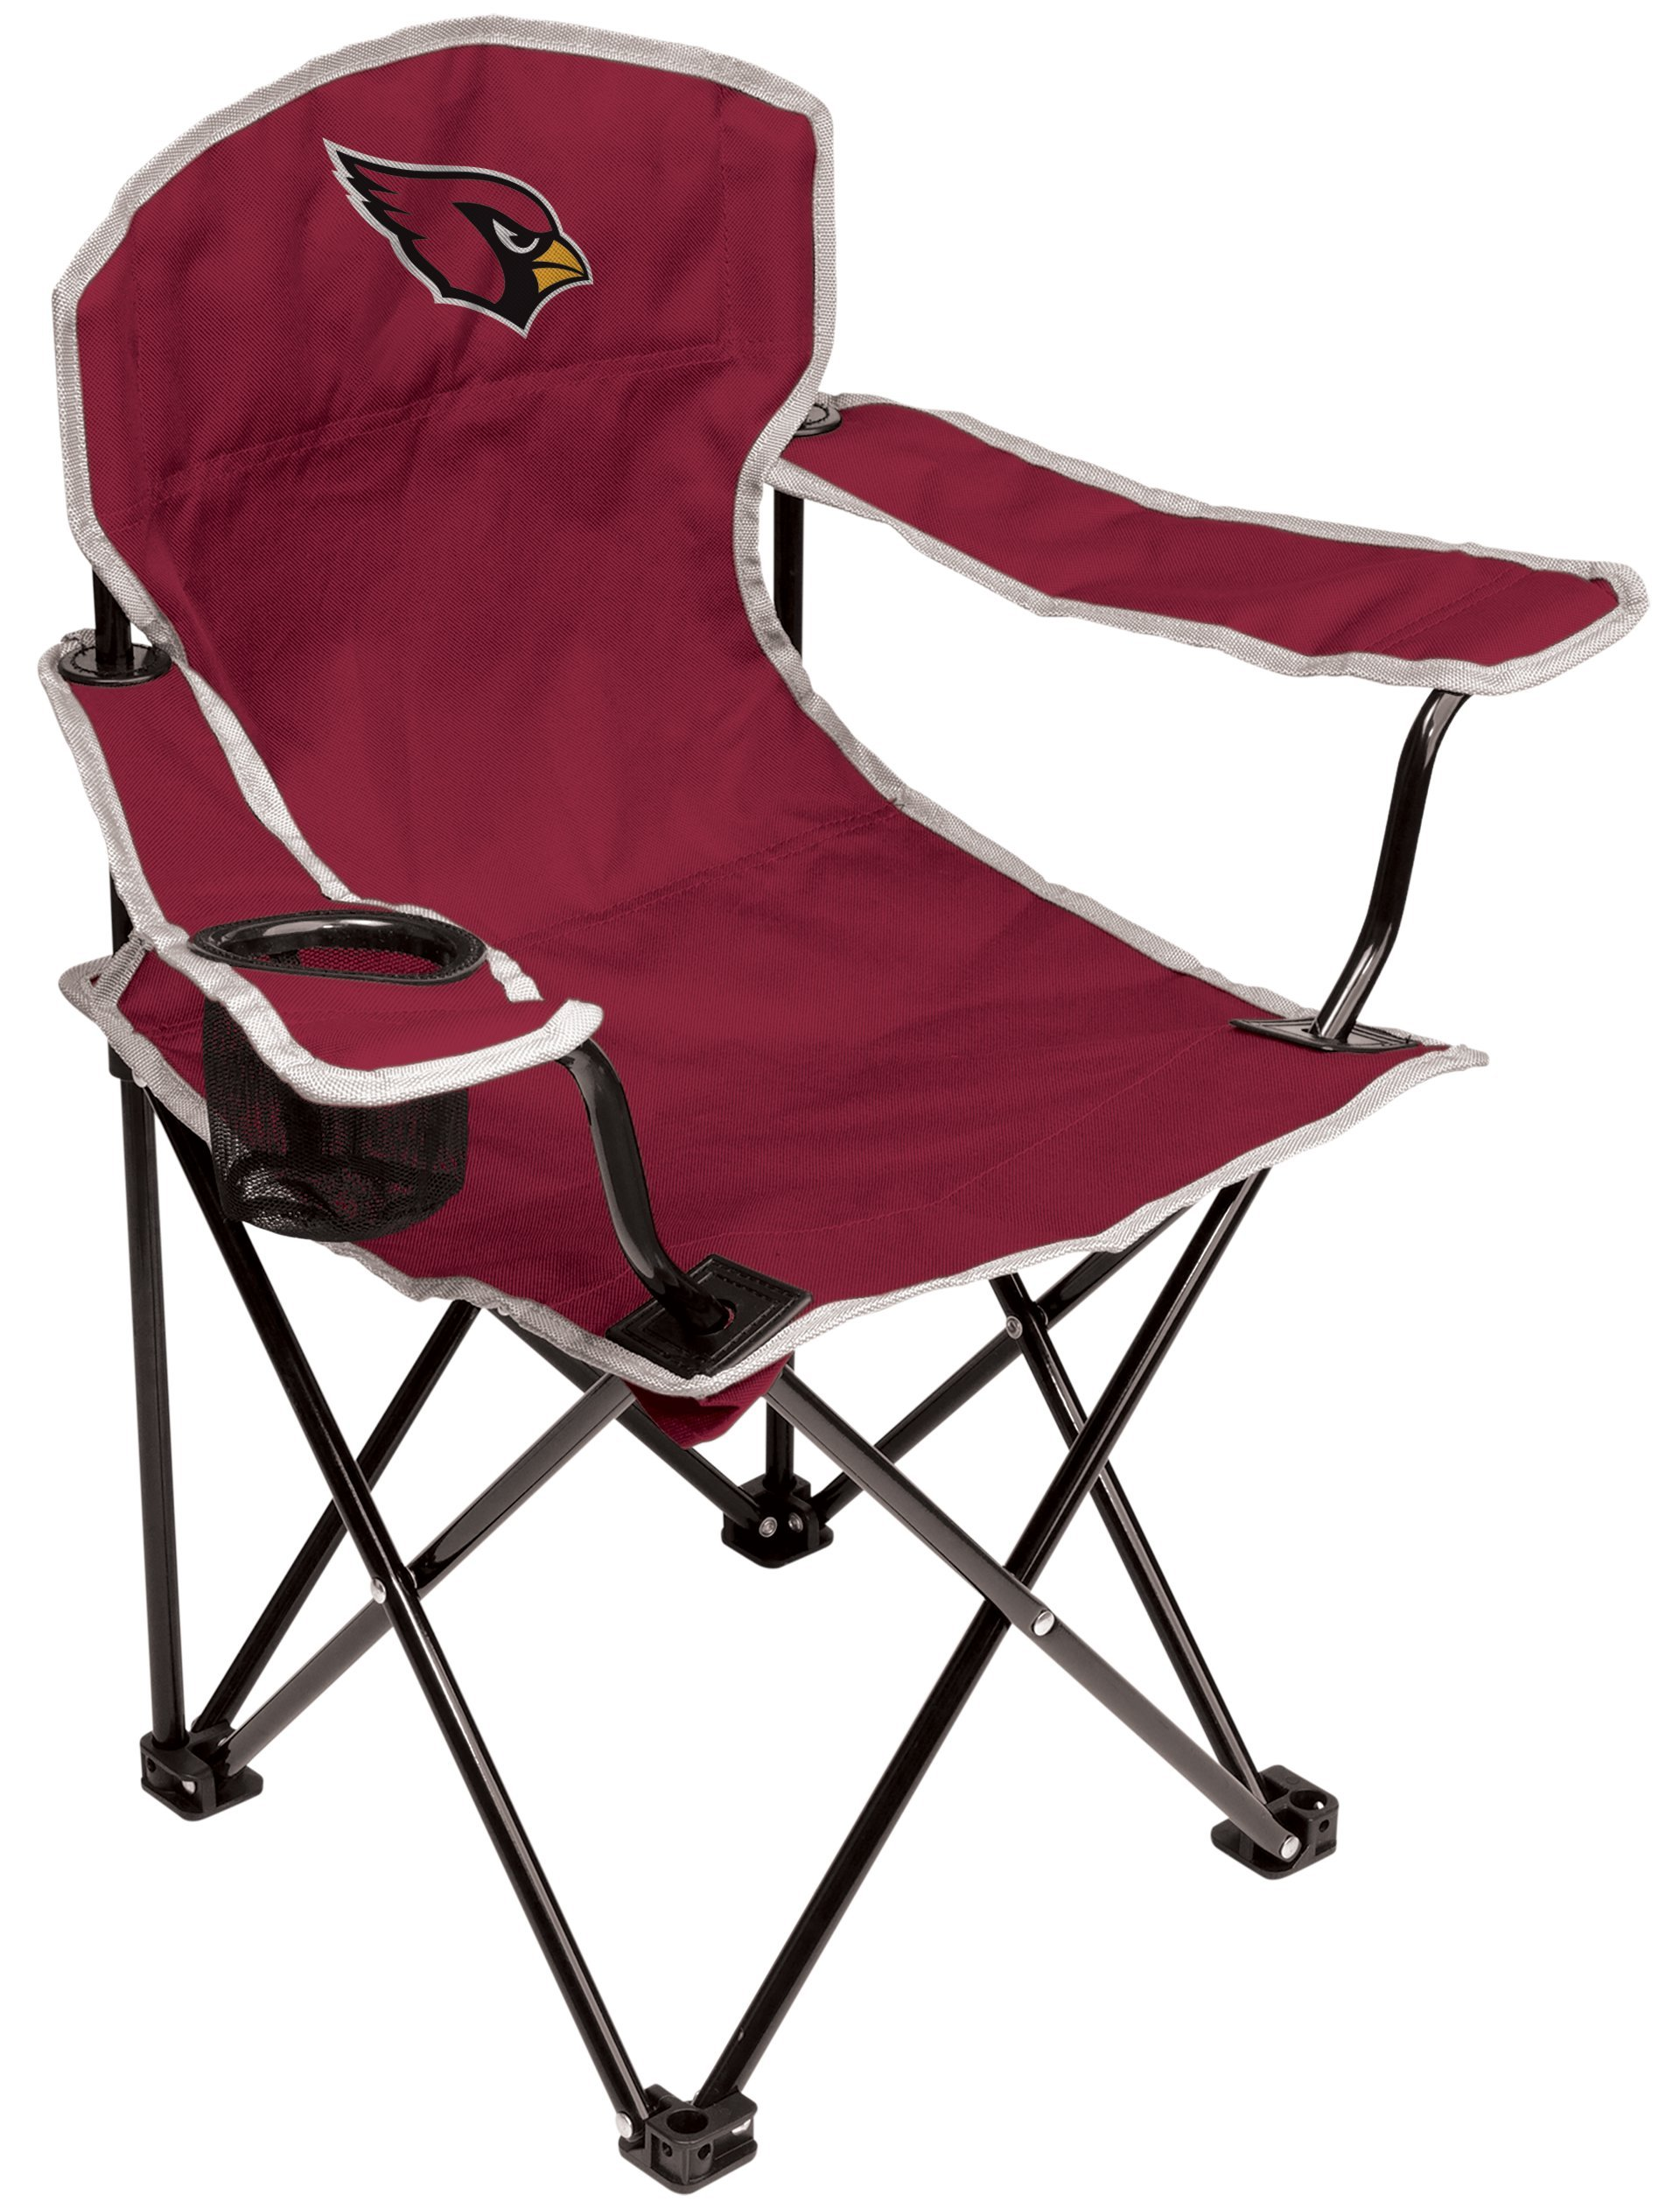 Coleman NFL Arizona Cardinals Youth Folding Chair, Red